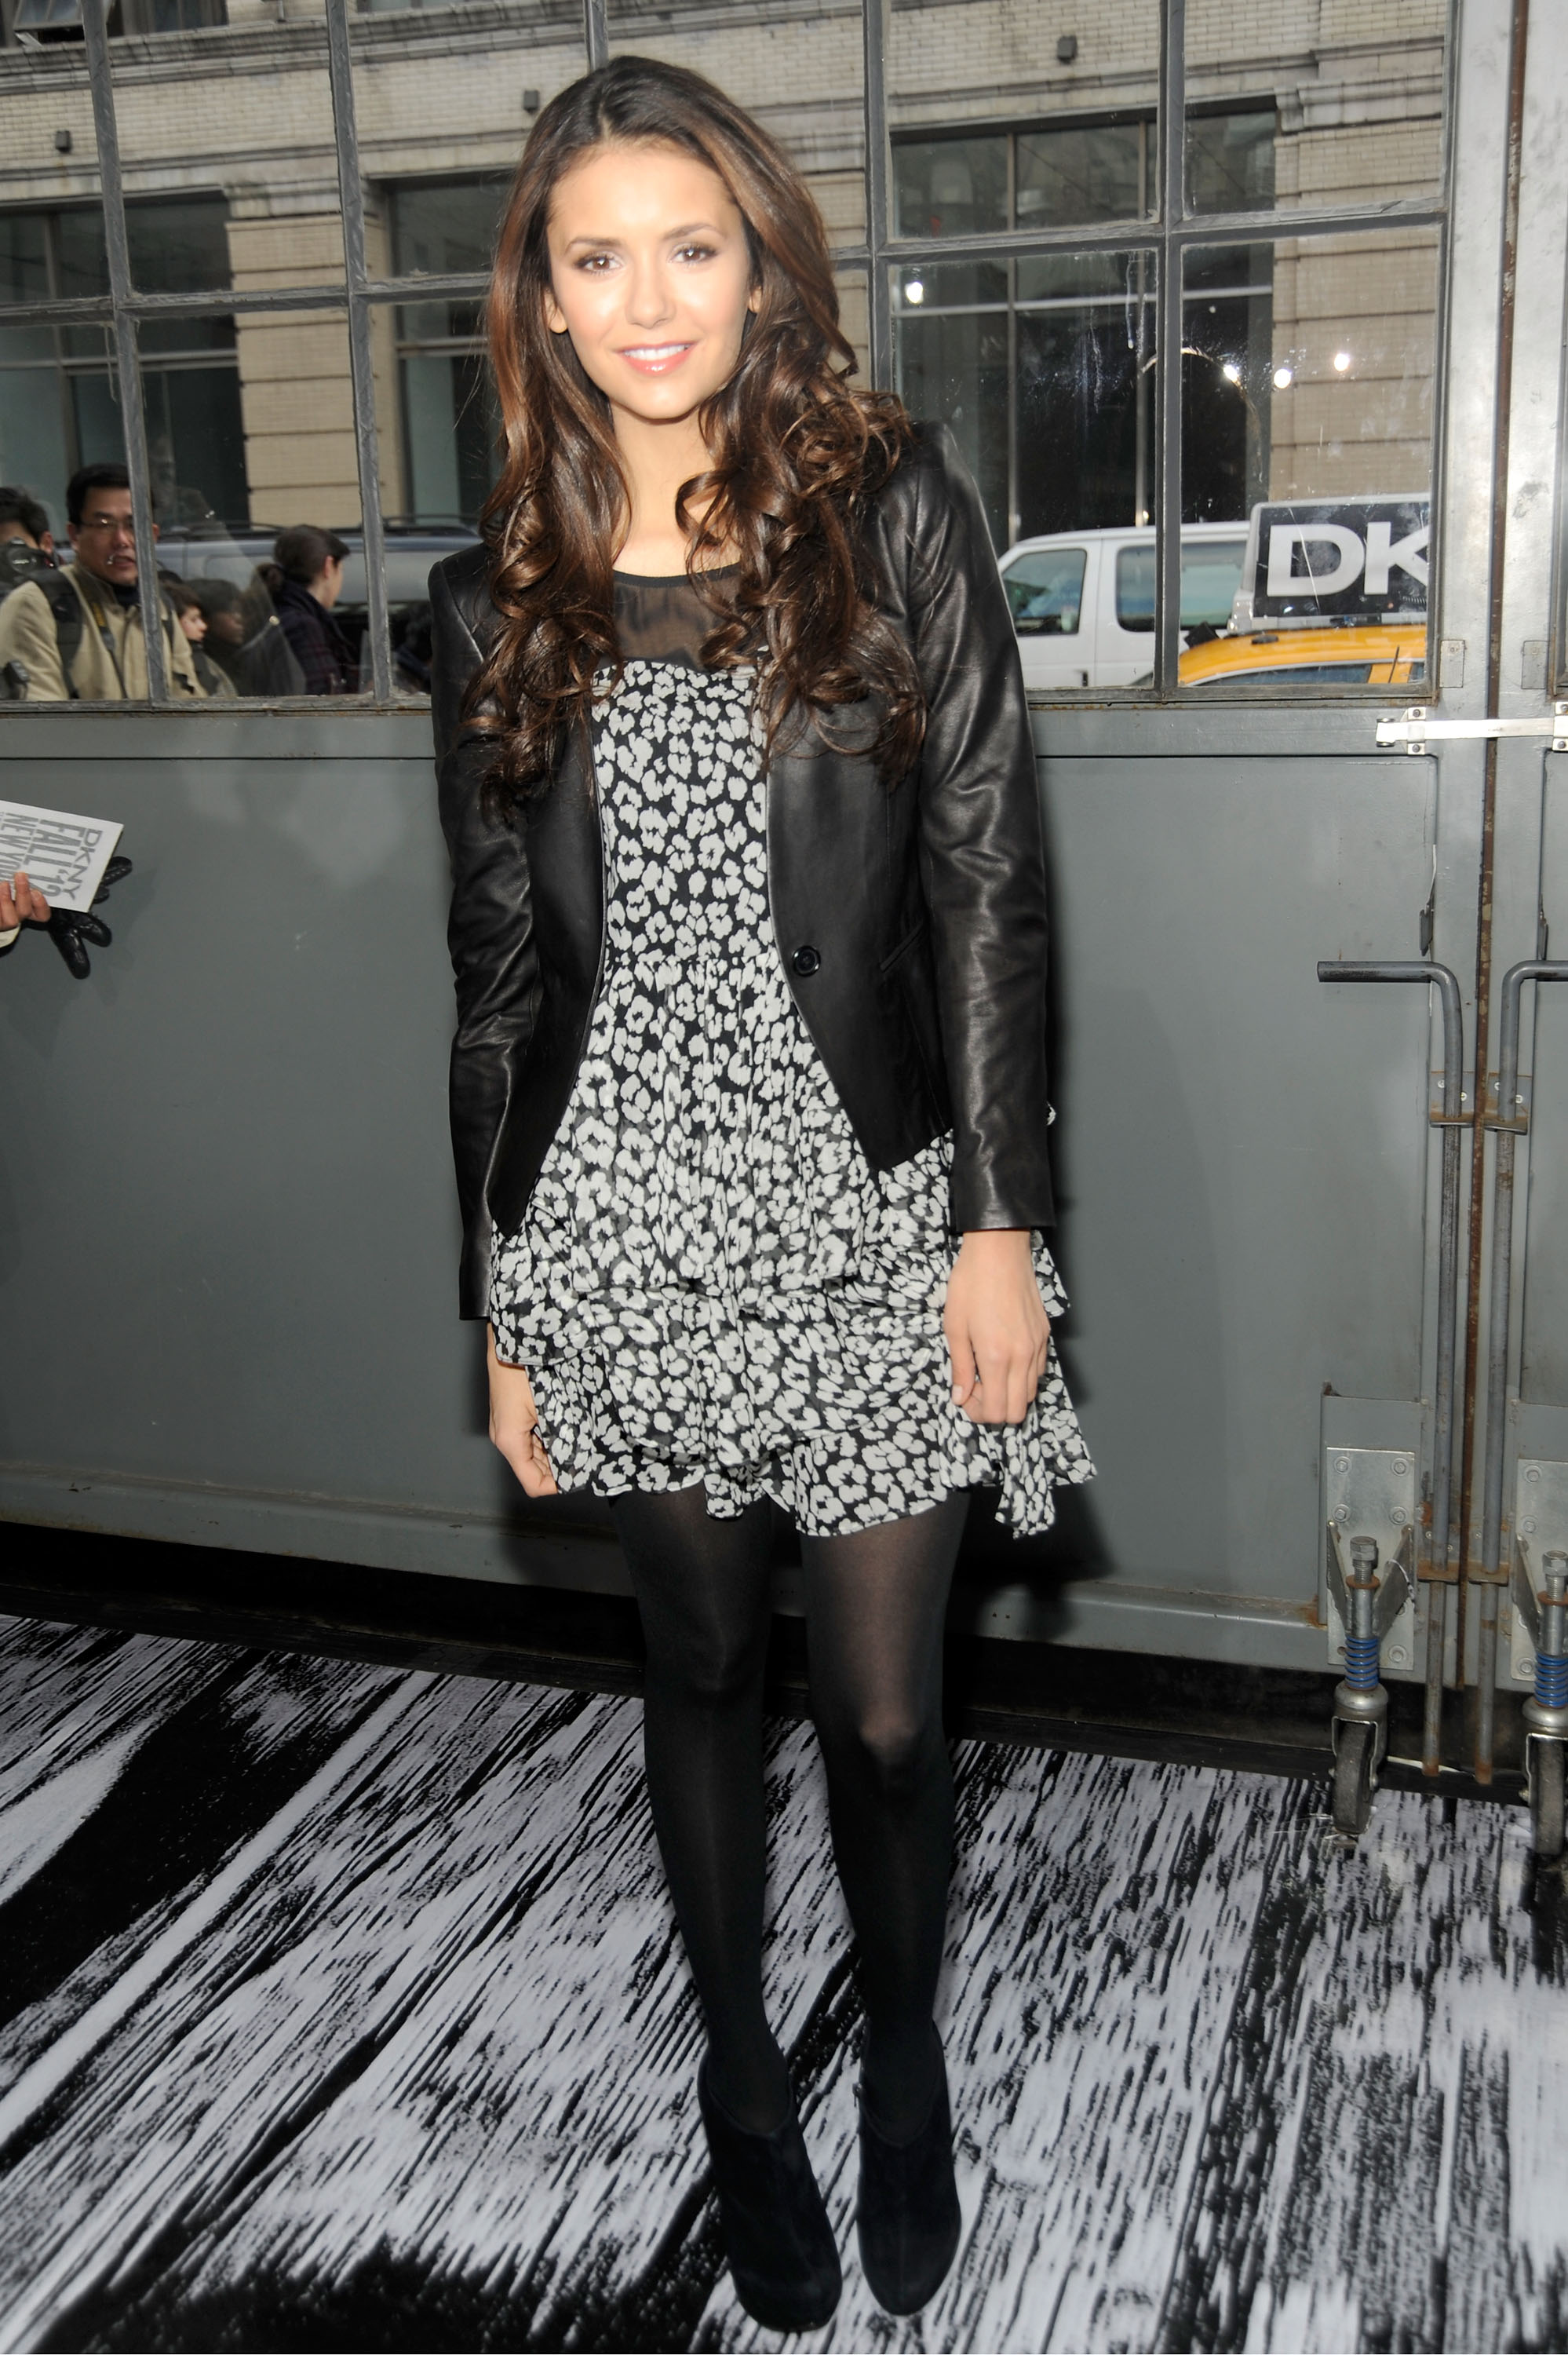 She nailed the cool-girl look in a floral DKNY frock and tougher leather jacket at the brand's Fall 2012 runway show.